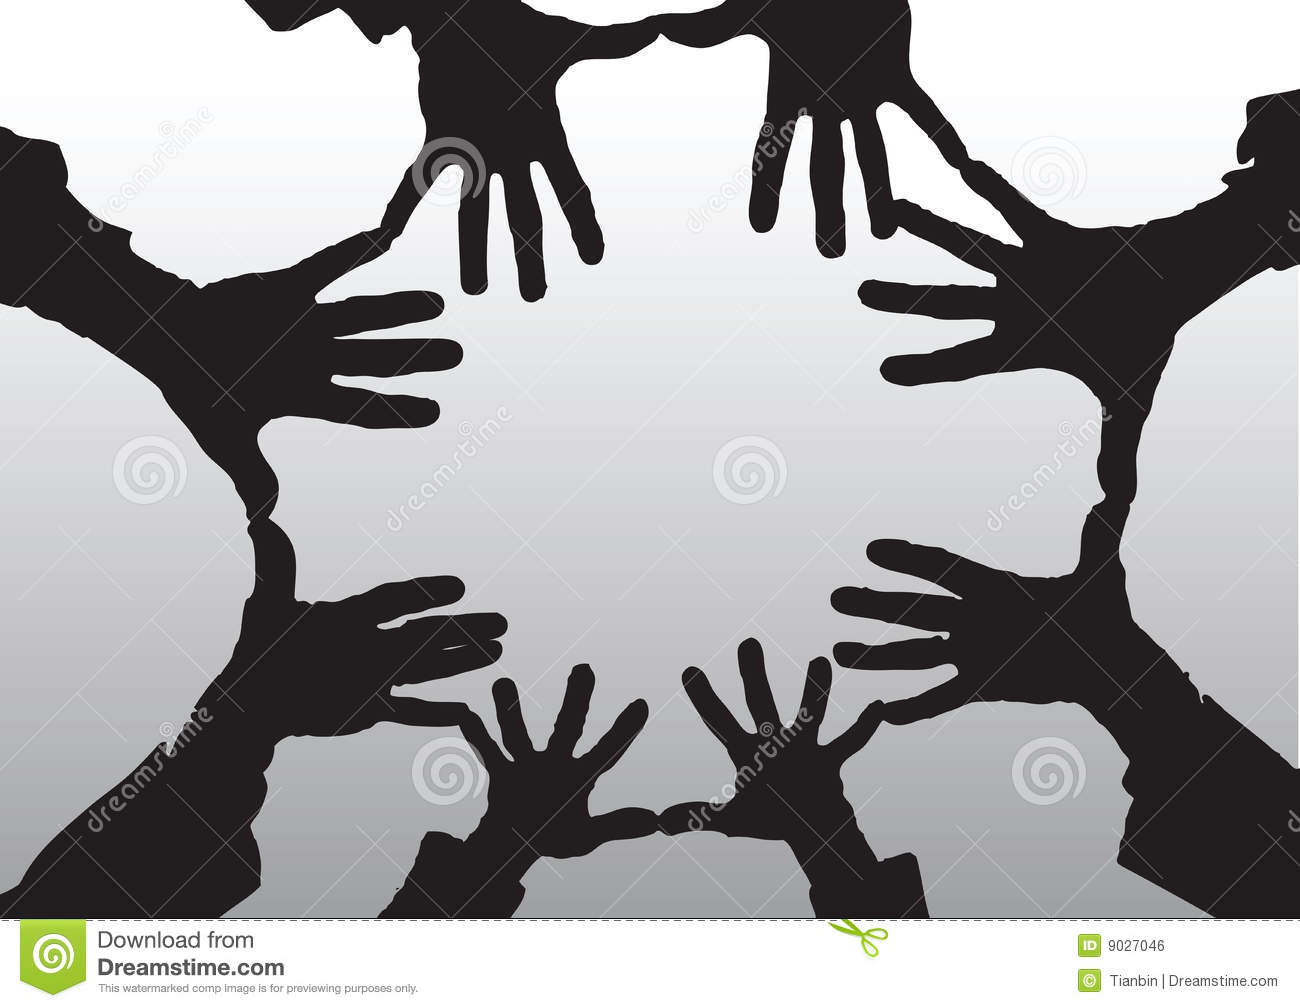 Open Hands Cartoon Silhouette Royalty Free Stock Image ...